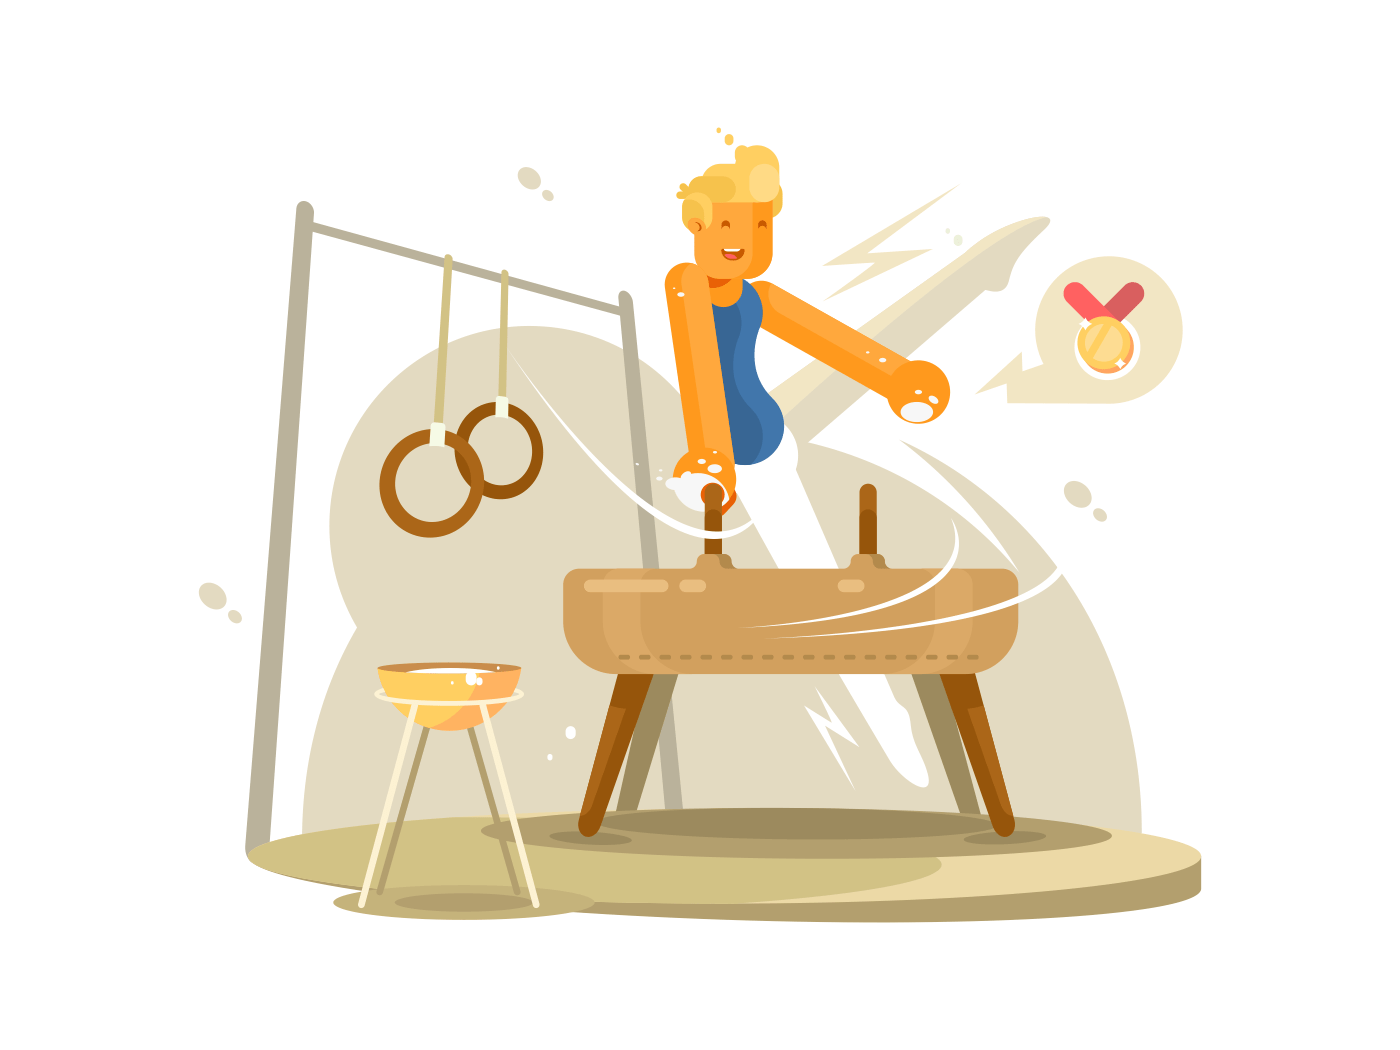 Sports gymnast on log illustration